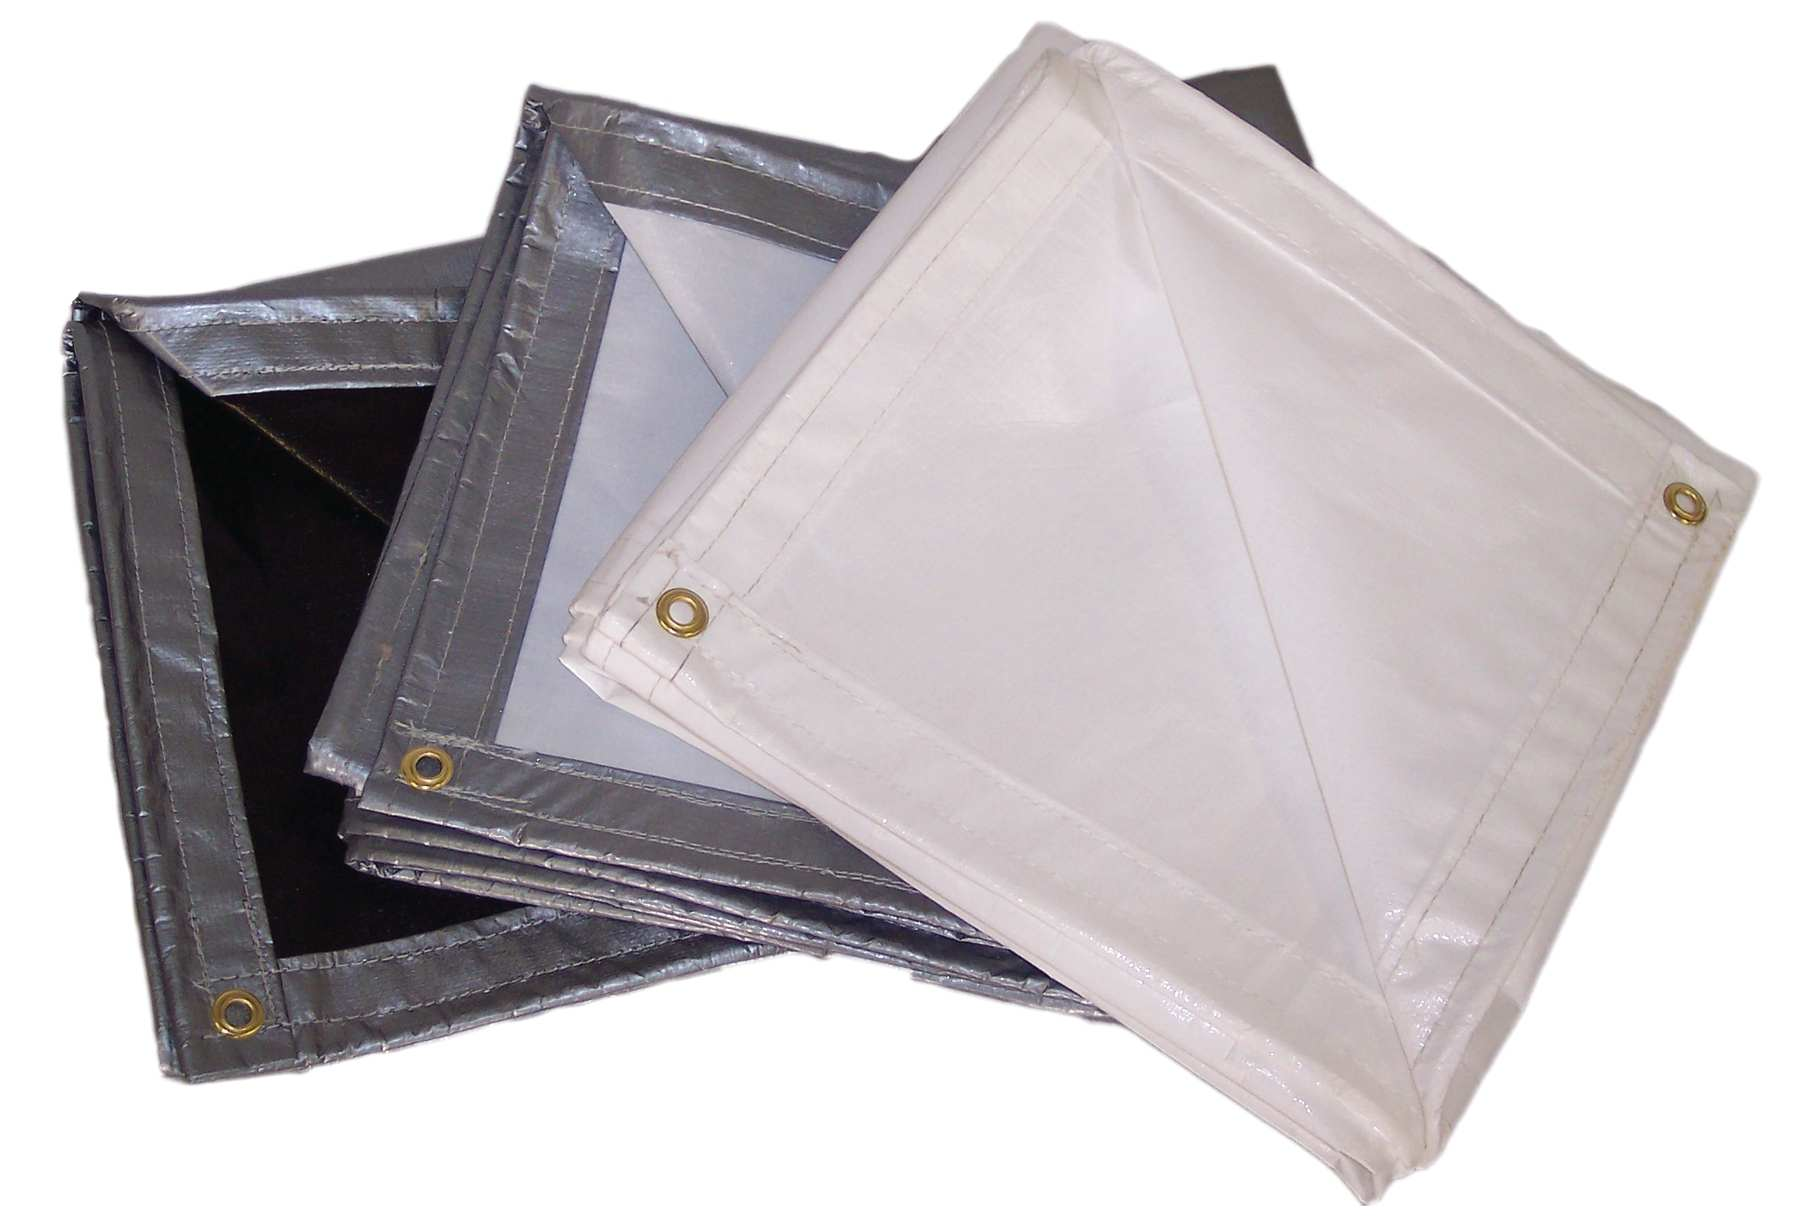 Heavy Duty Reinforced Polyethylene Tarps – 12 mil., 7 oz./sq. Yd.; Size (ft.) 12 x 15